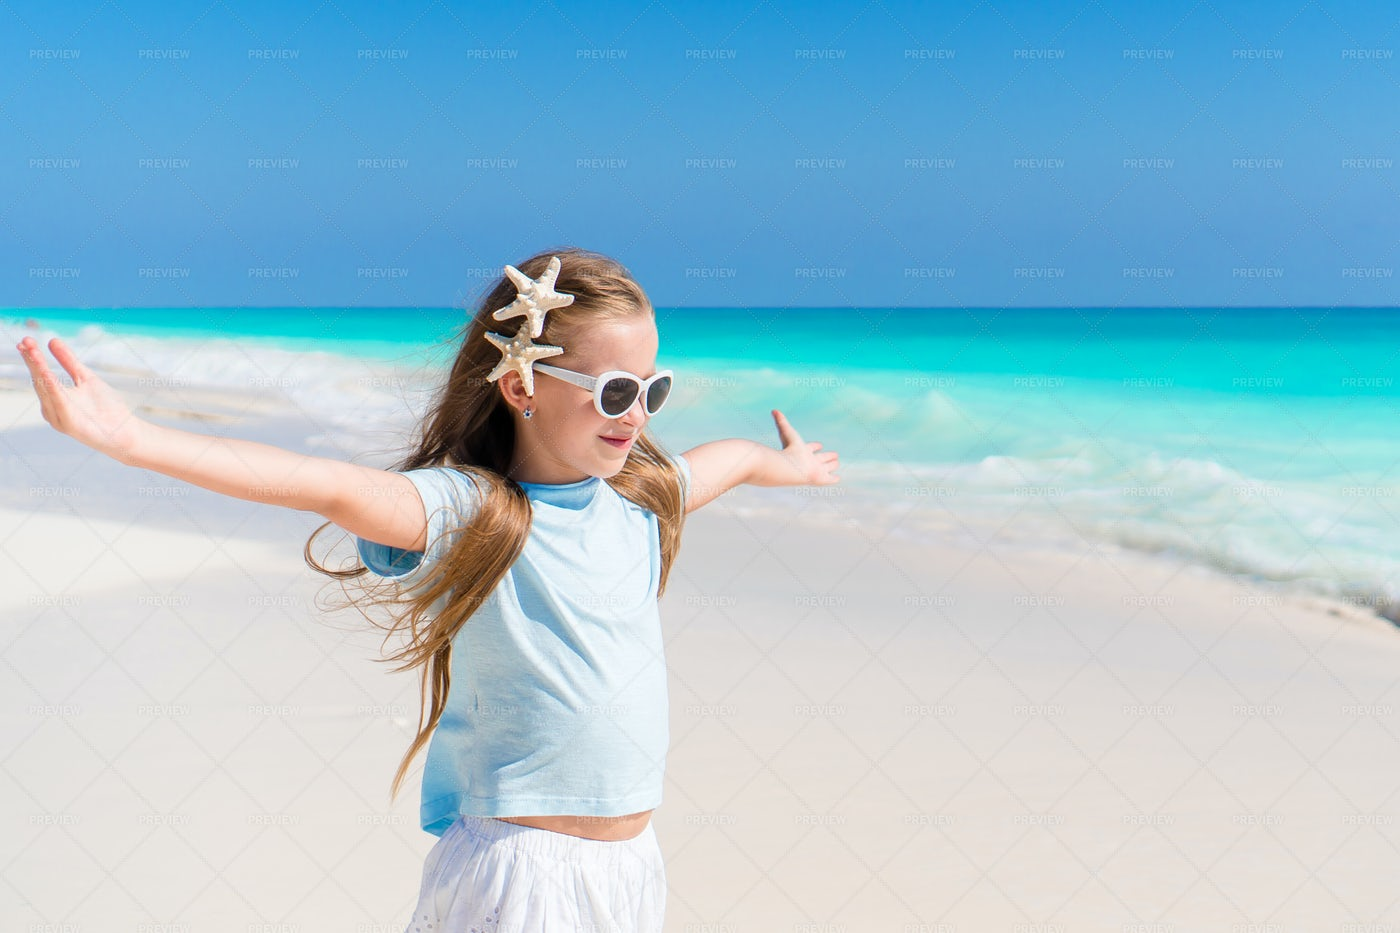 Girl With Starfish In Her Hair: Stock Photos